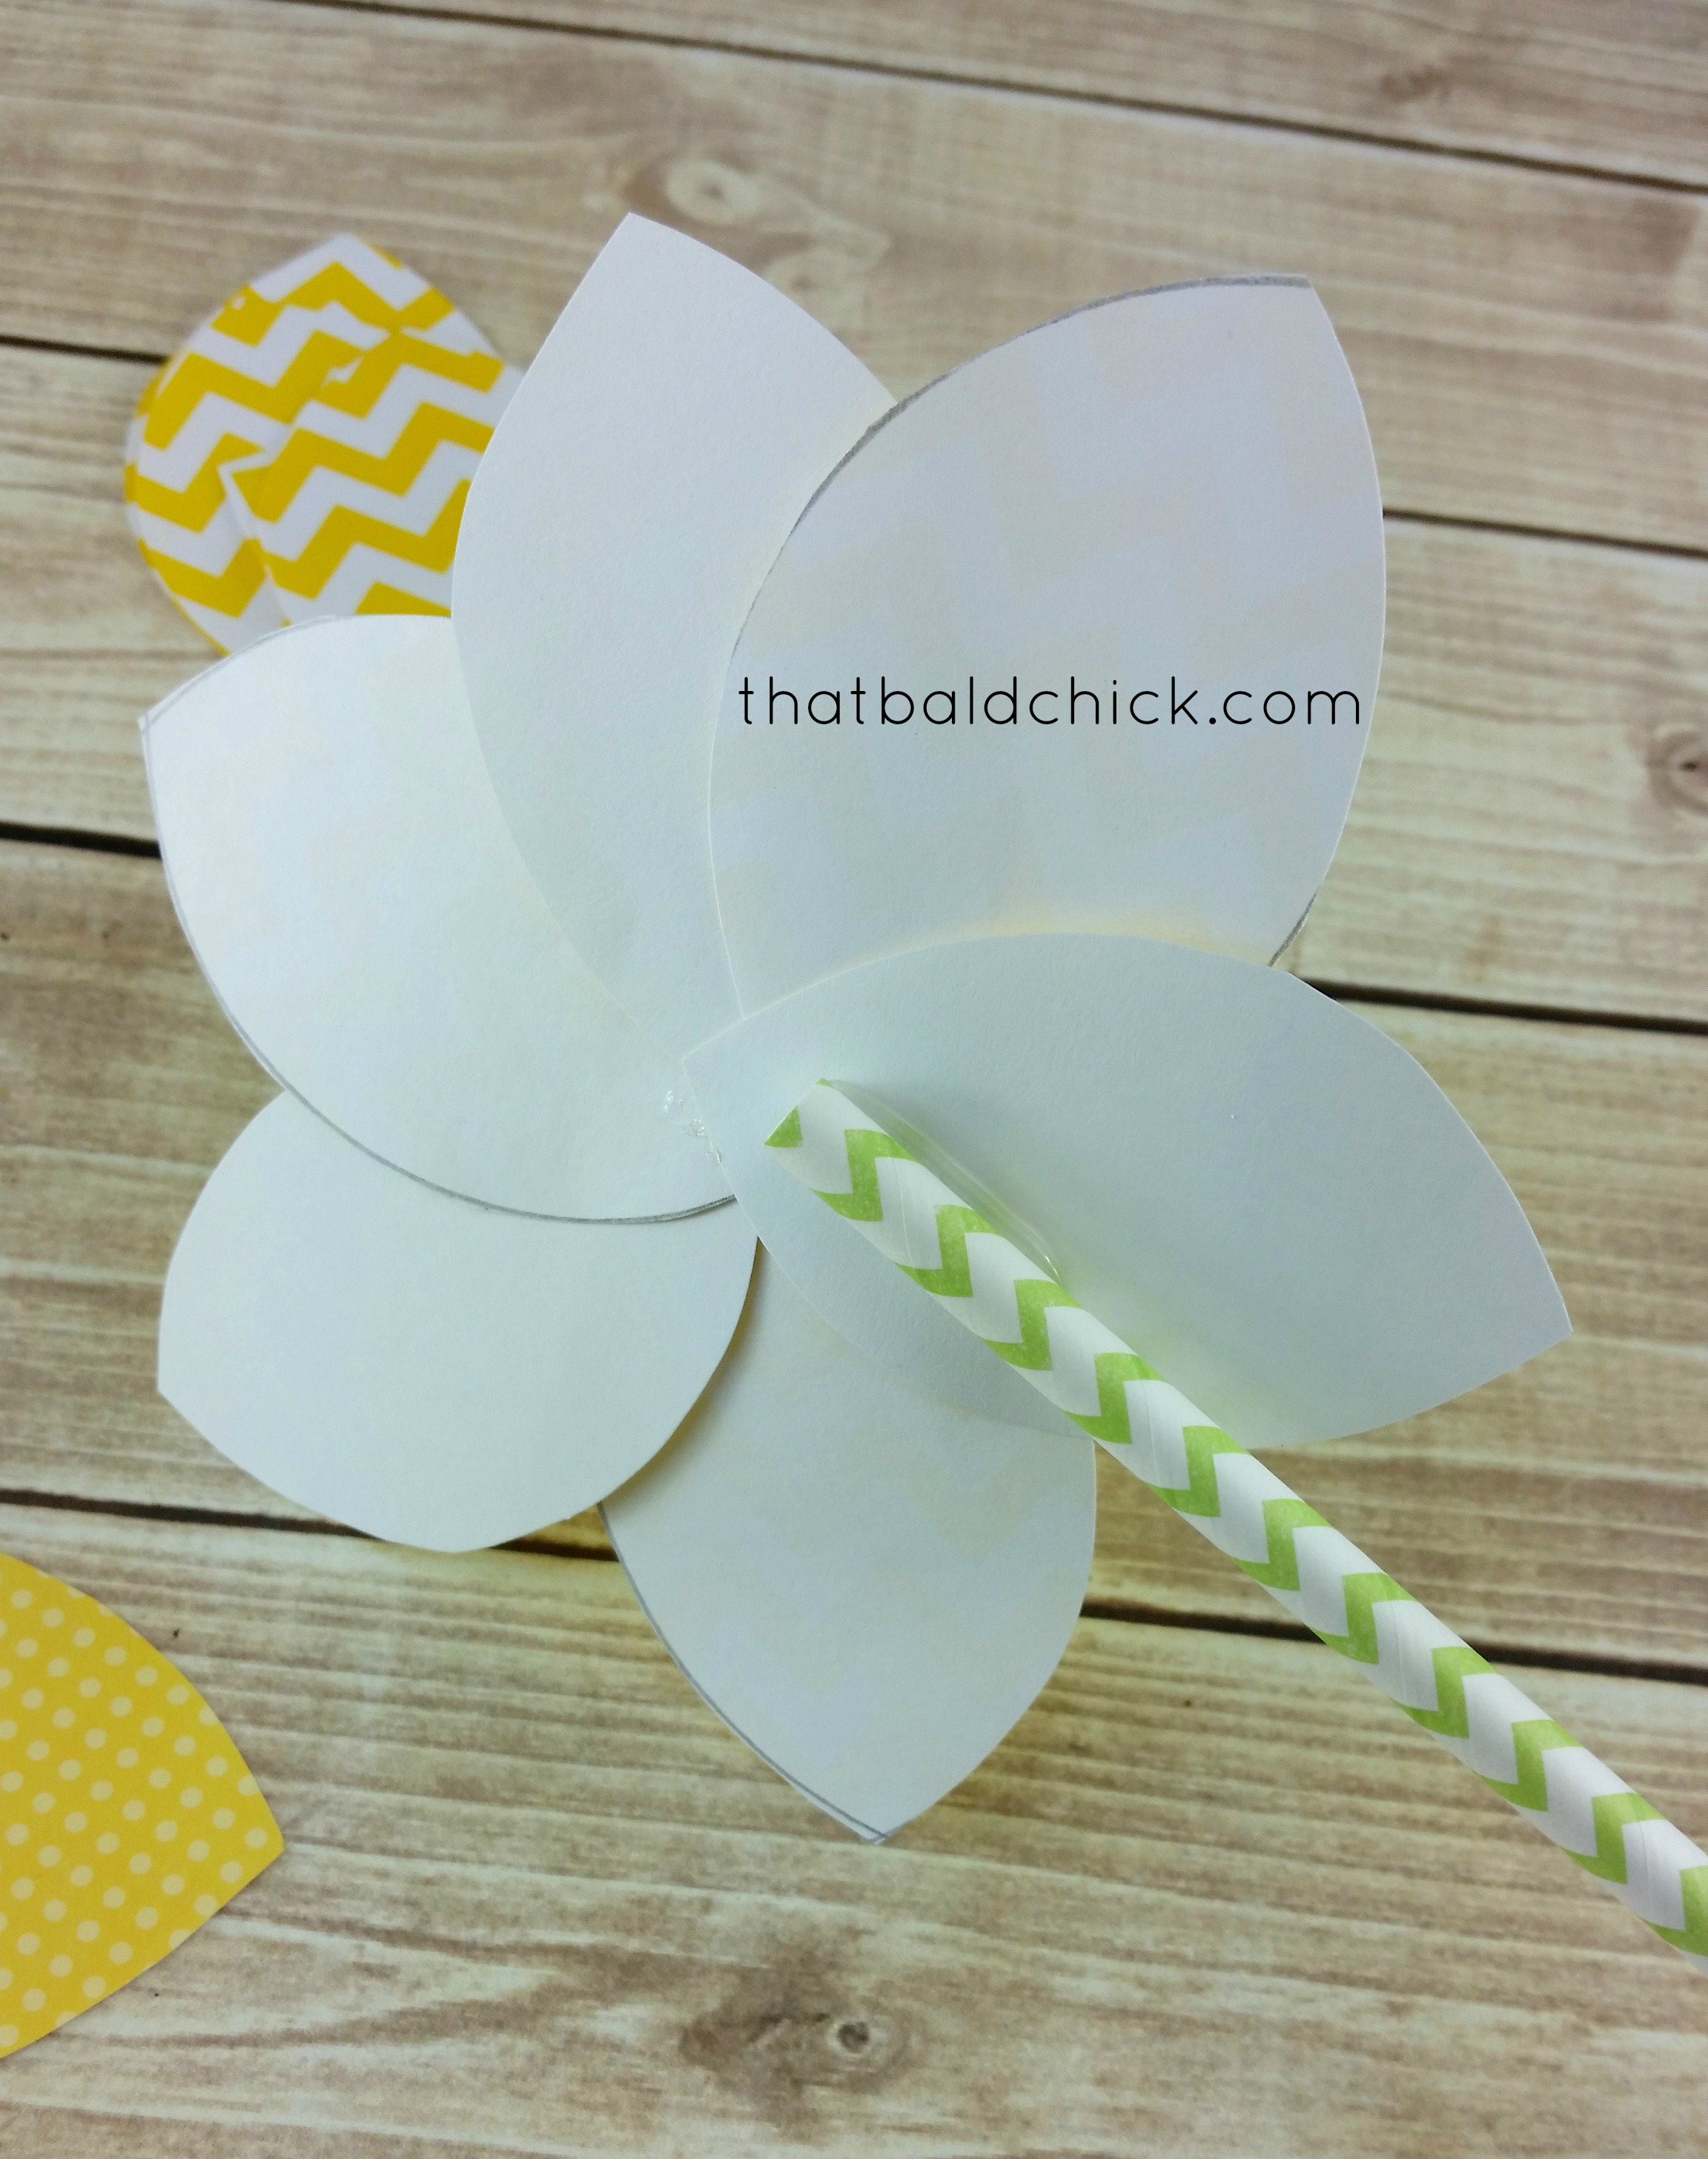 affix straw to back of petals